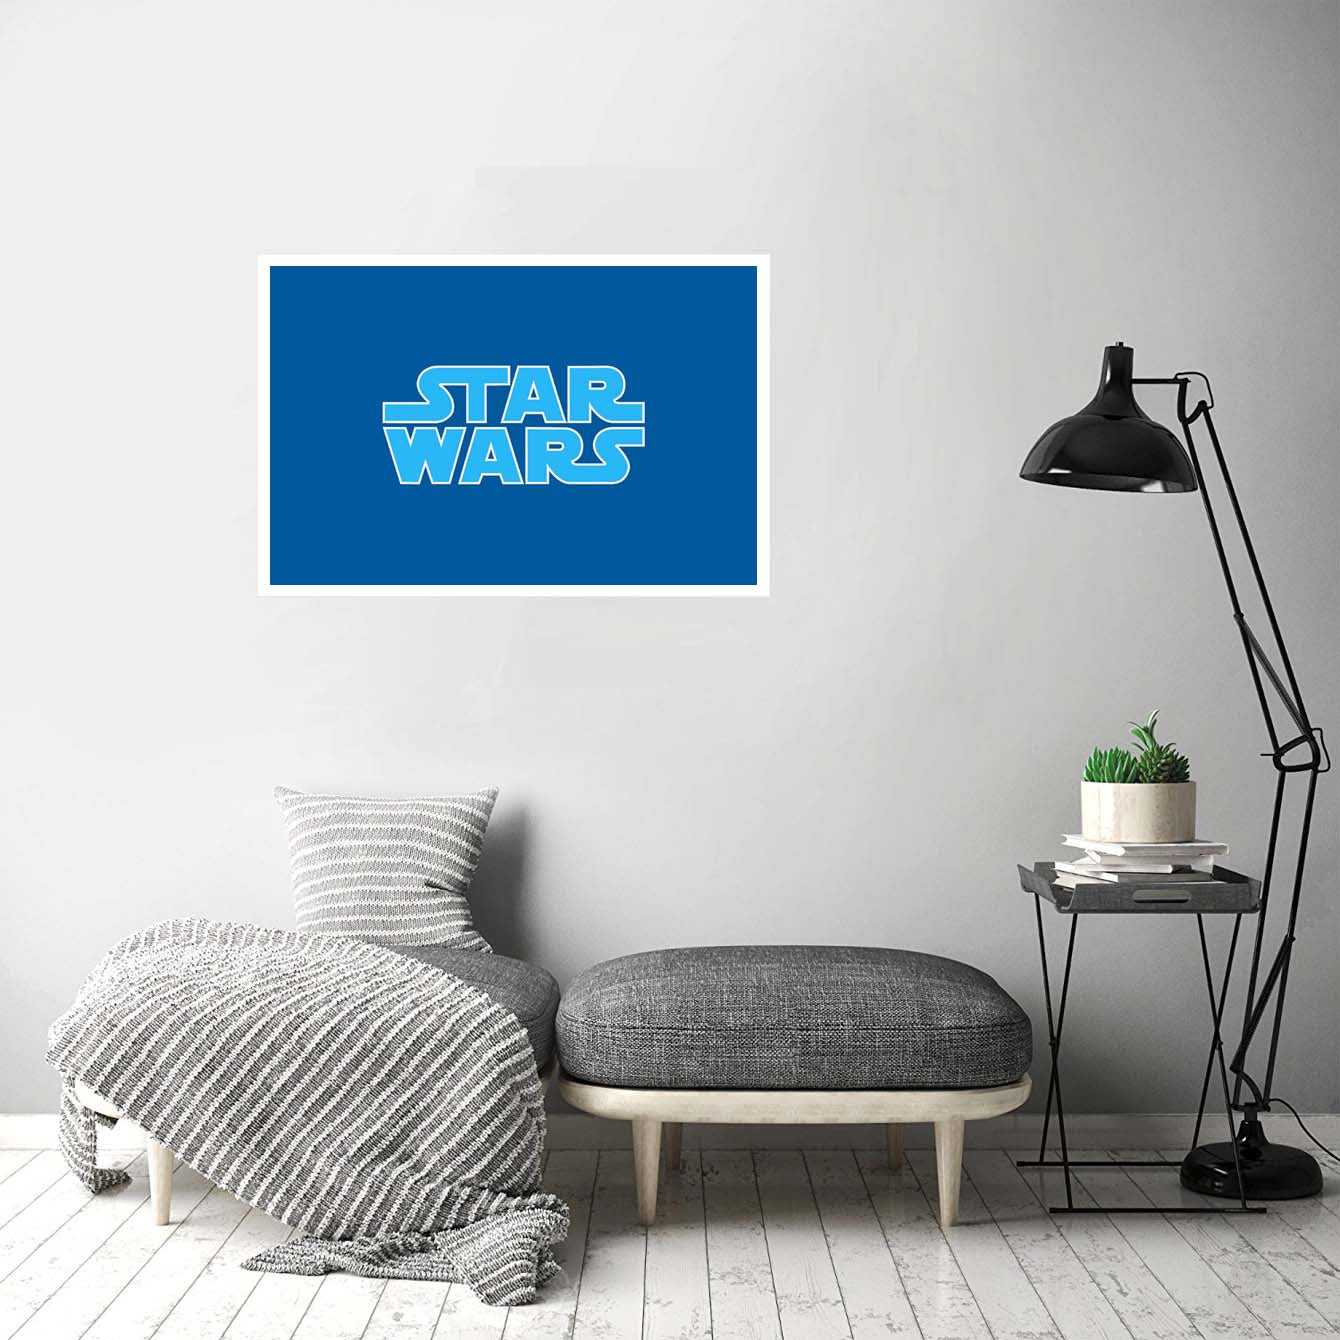 Star wars Movies Posters